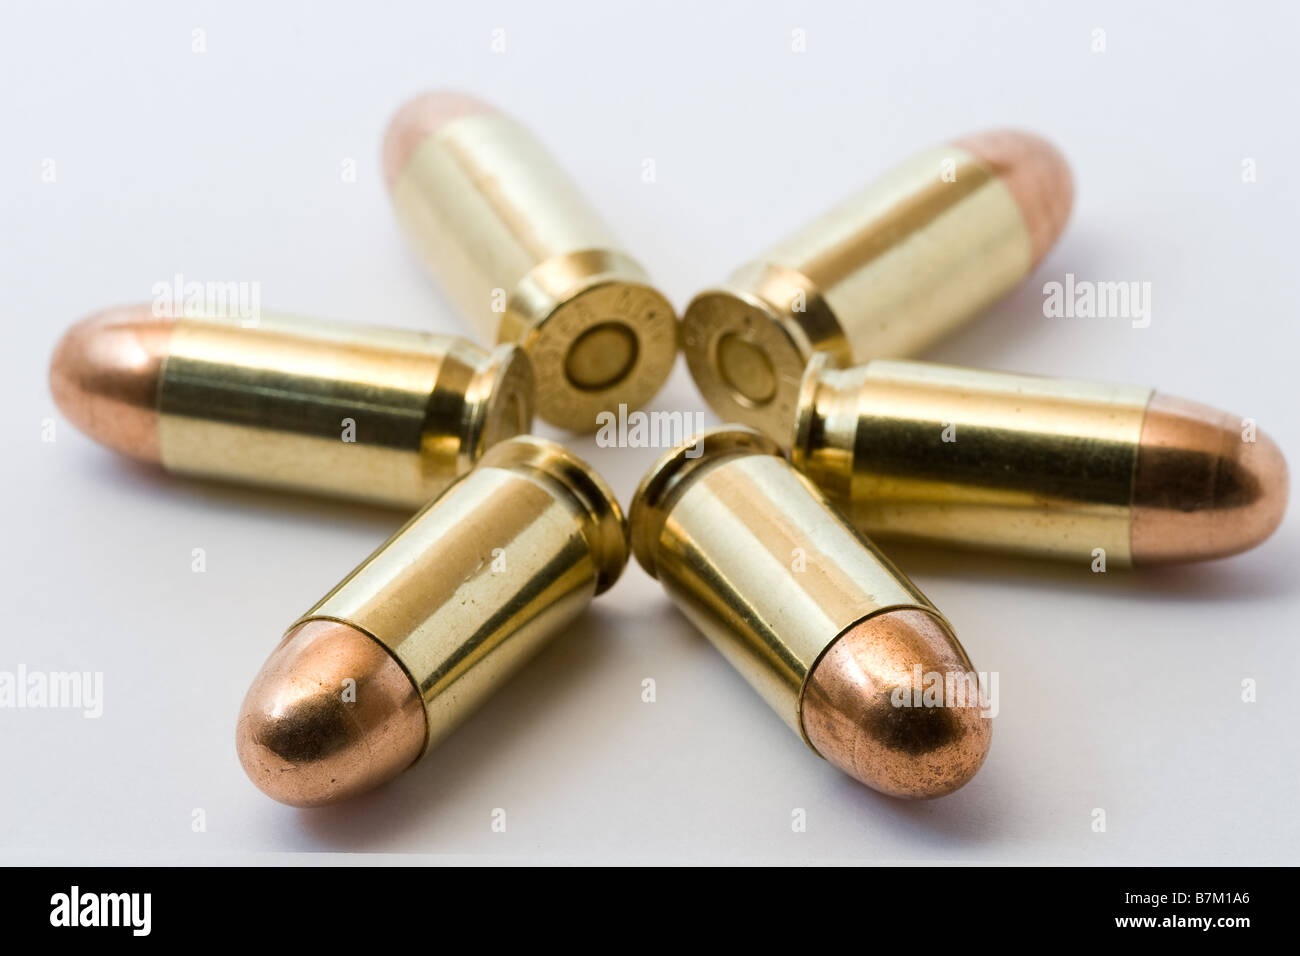 .45 Bullets - Stock Image